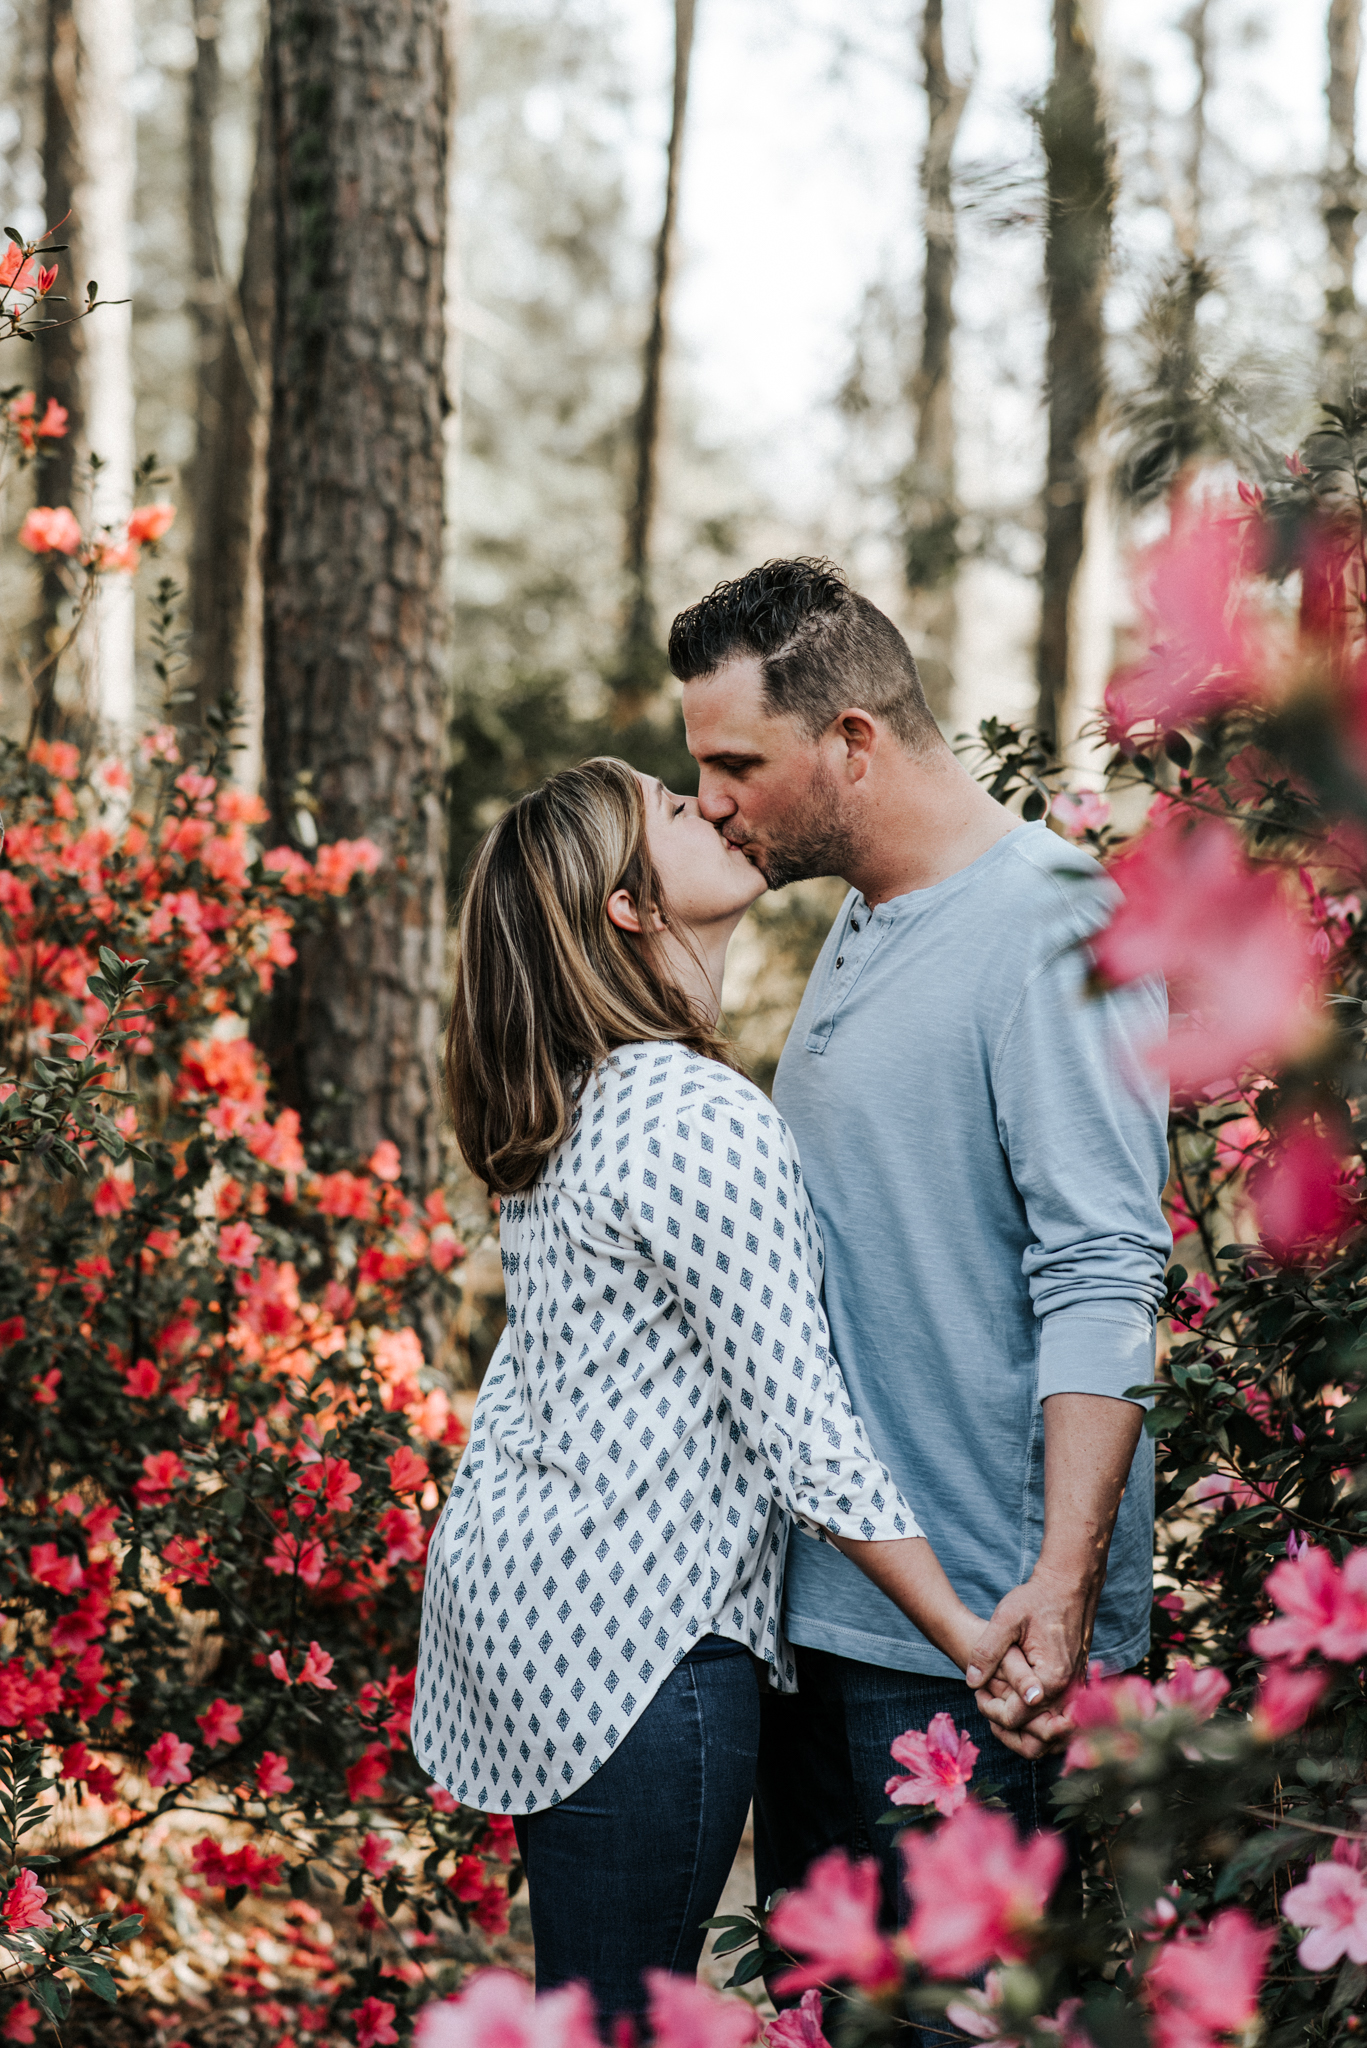 Windrush Gardens, LSU Rural Life Museum, LSU AgCenter Botanic Gardens Engagement Session in Baton Rouge, Louisiana by Magnolia and Grace Photography